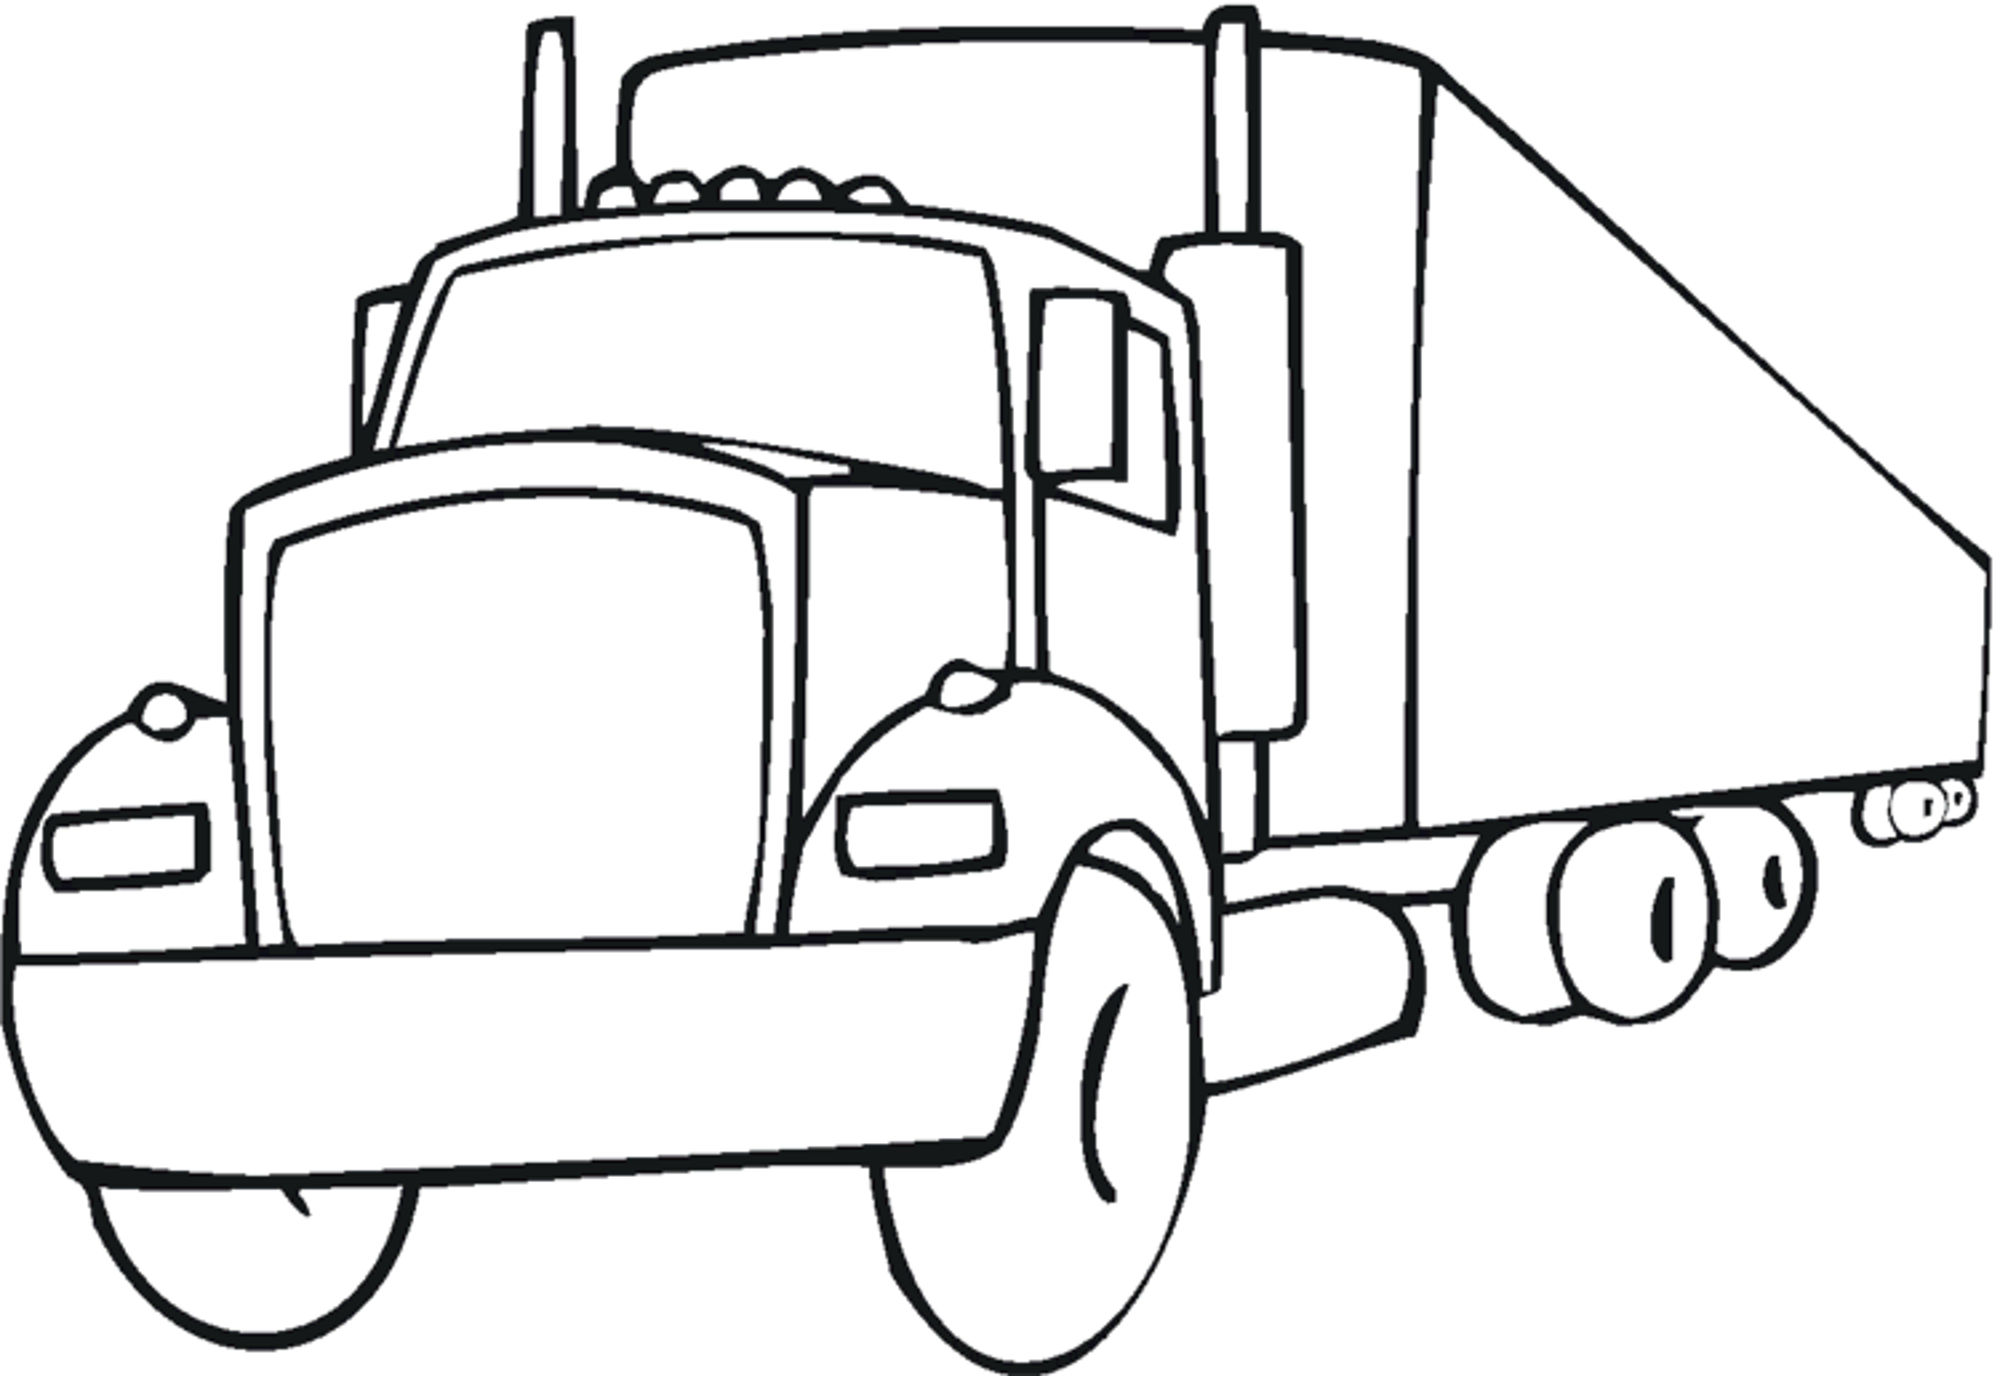 trucks and trains coloring pages - photo#14